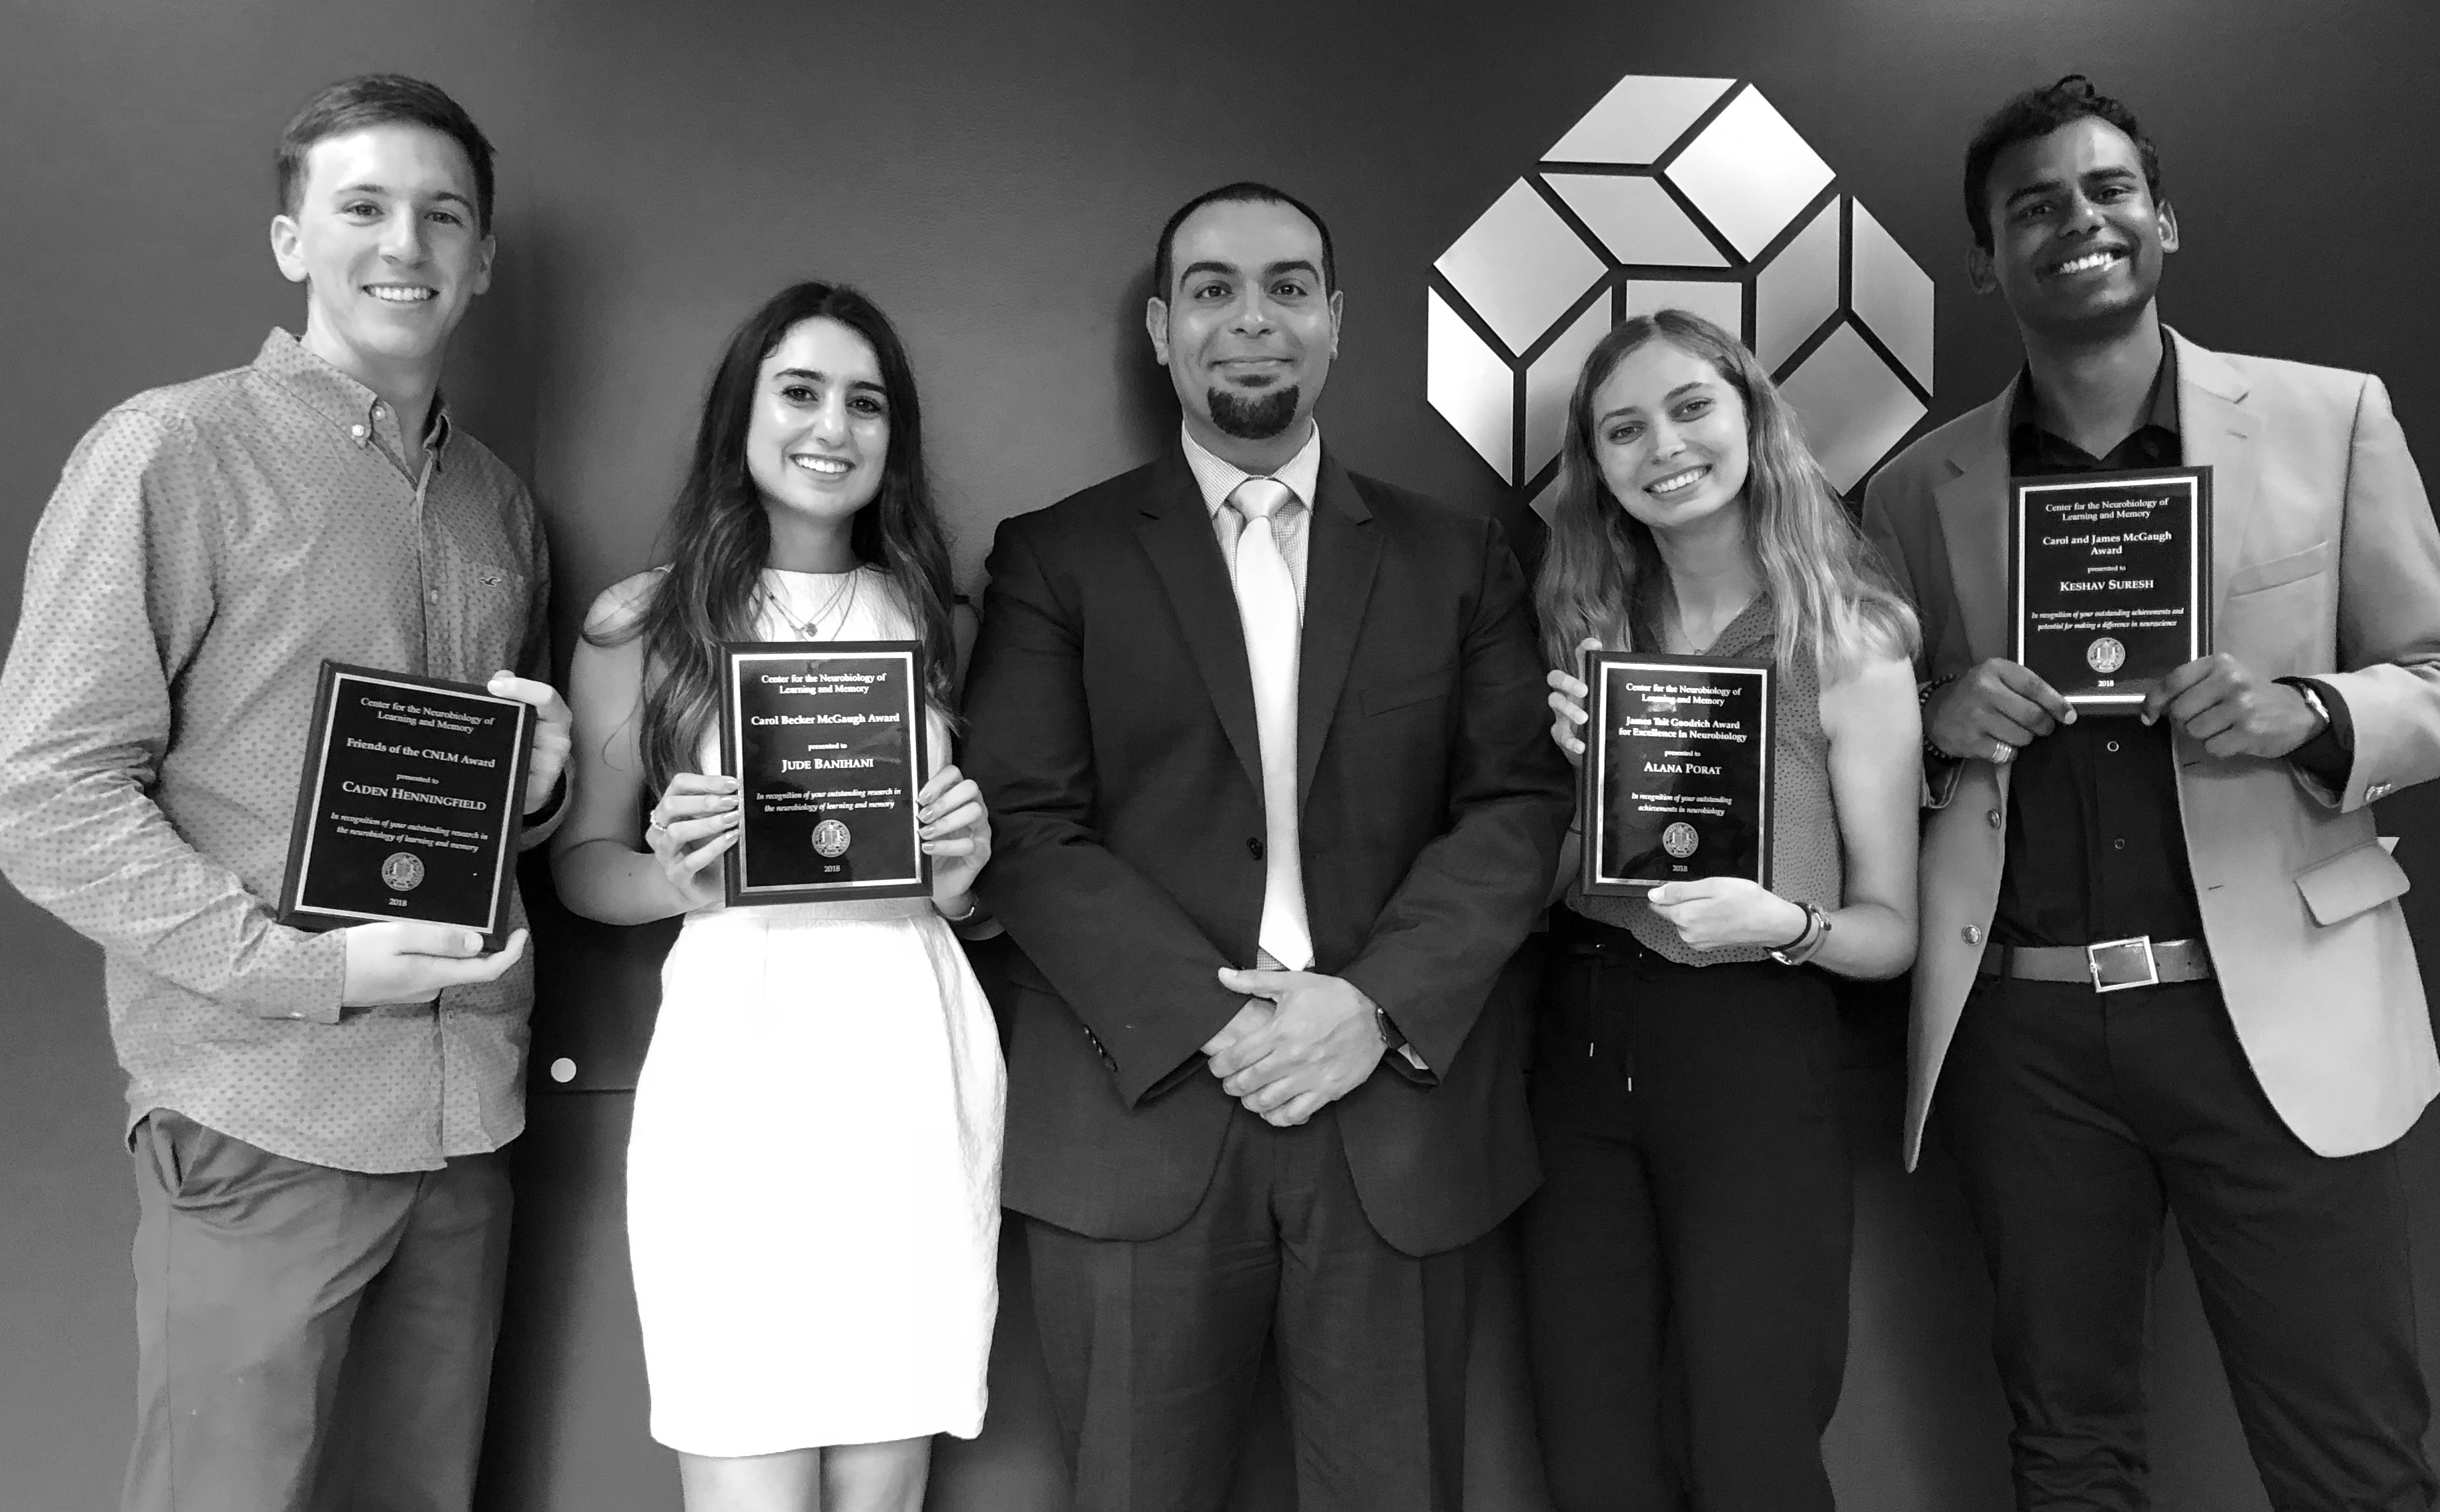 Undergraduate Award Recipients Caden Henningfield, Jude Banihani, Alana Porat and Keshav Suresh pose with CNLM Director Dr. Michael Yassa